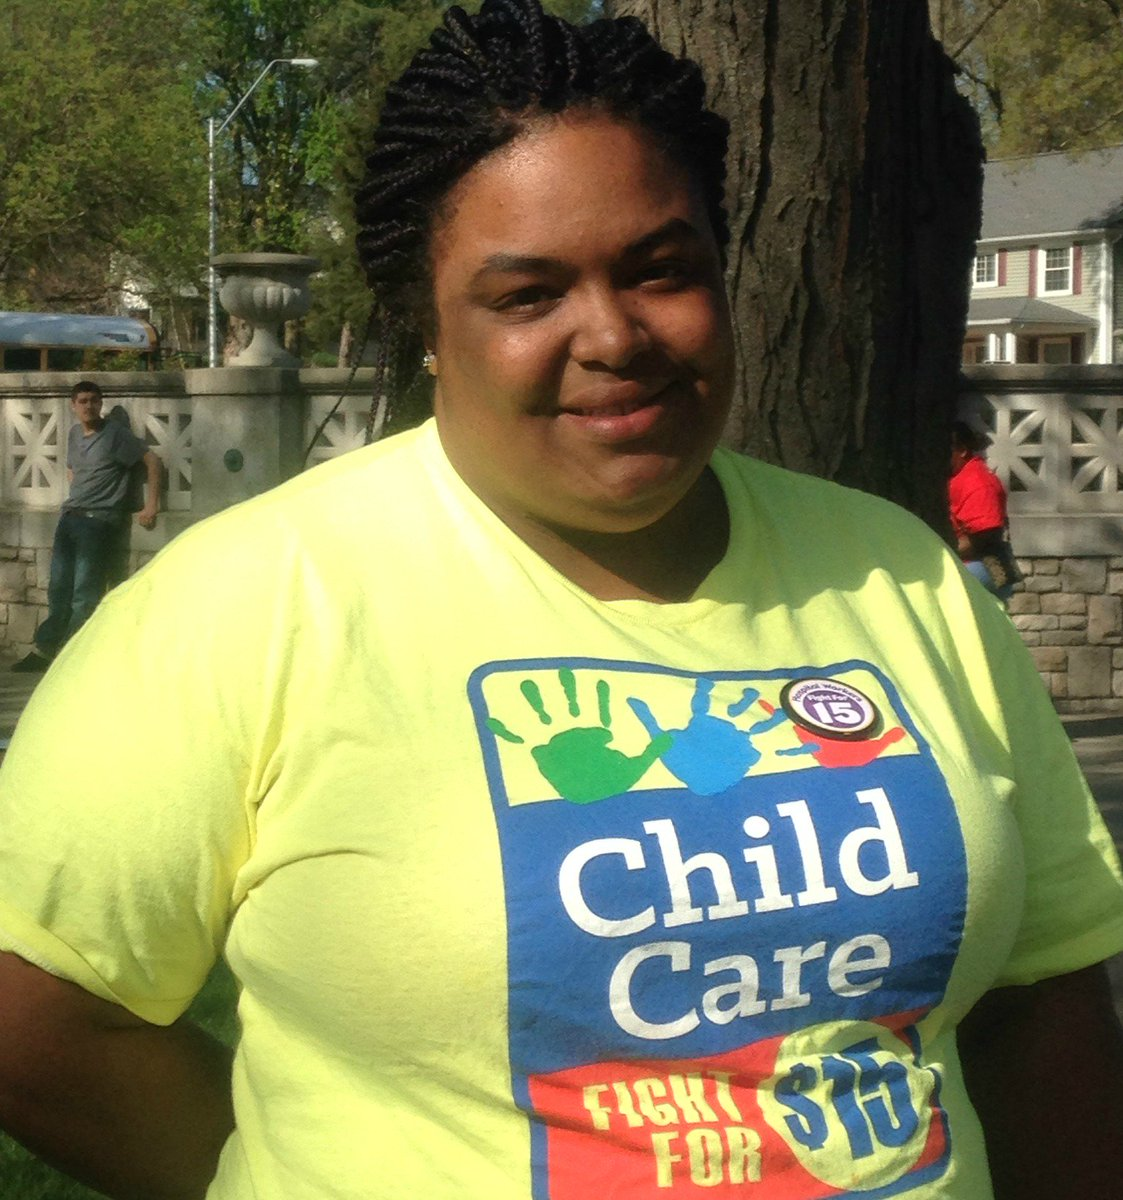 MUST READ: child care worker Kristie tells us why she joined the #fightfo15 & marched today https://t.co/H3MSjrb7q1 https://t.co/sPtFSeJ4Kj